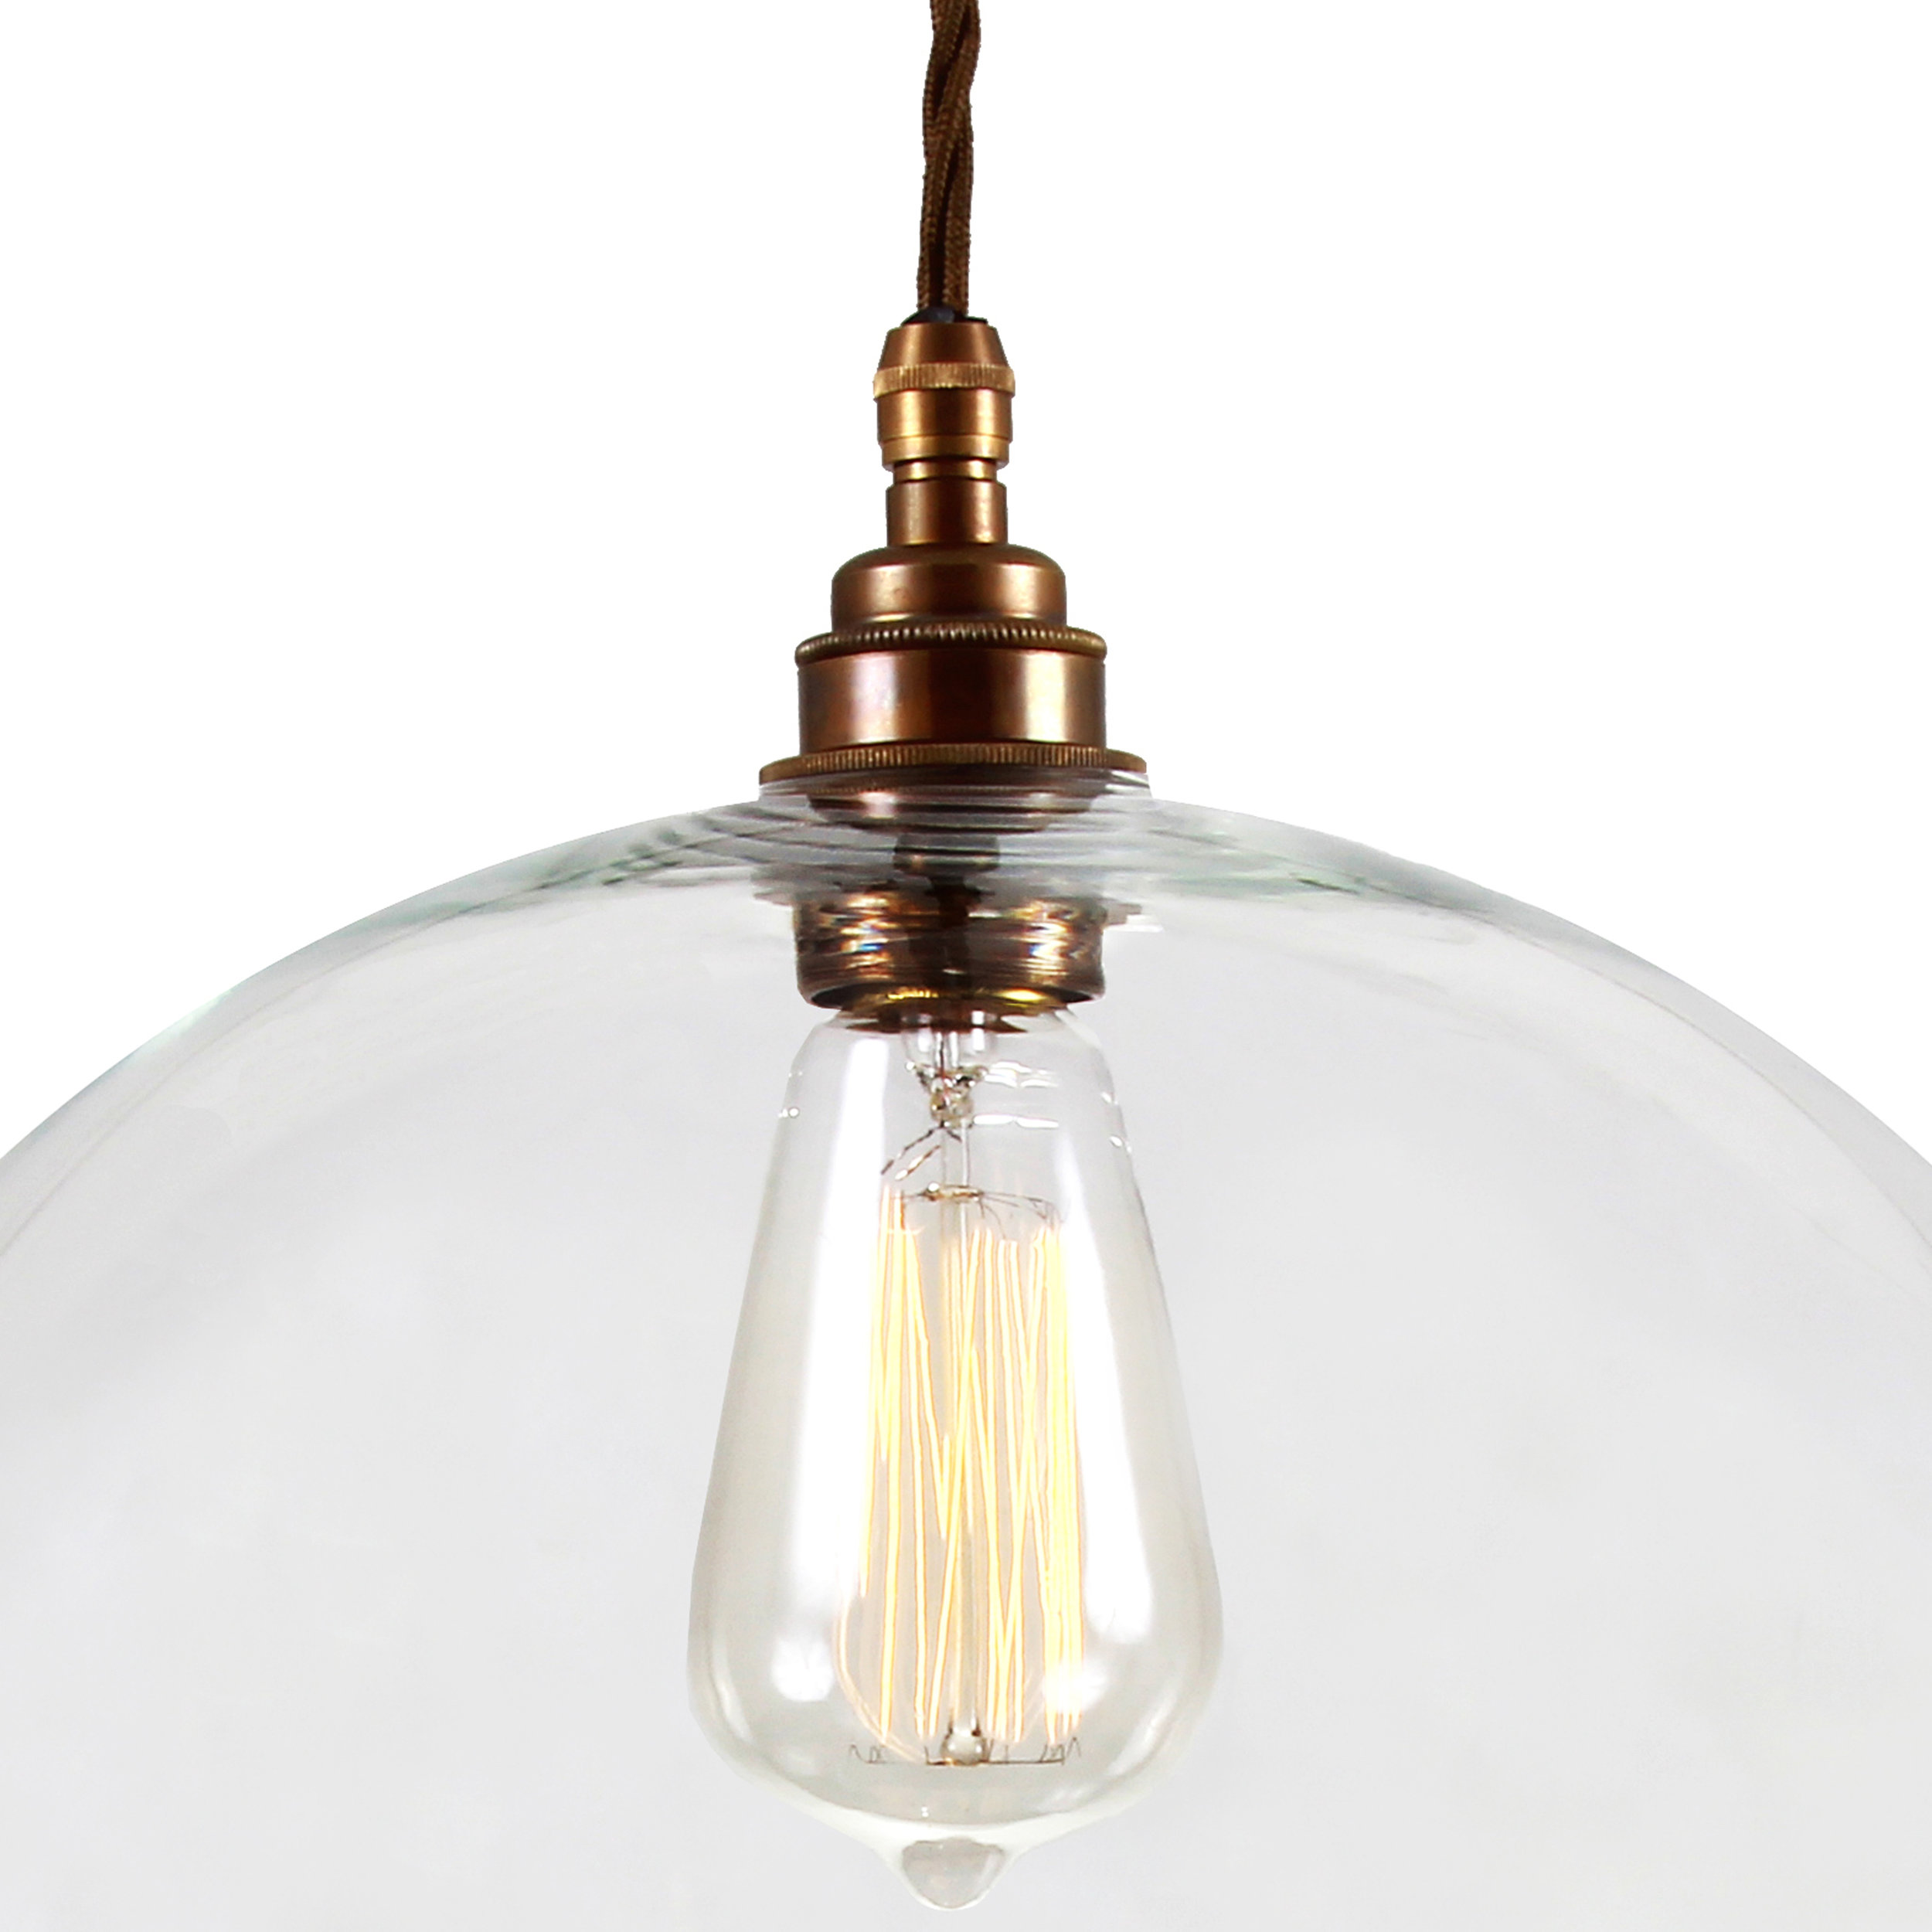 CEILING LIGHTS - Glass, Metal, Copper, we have them all